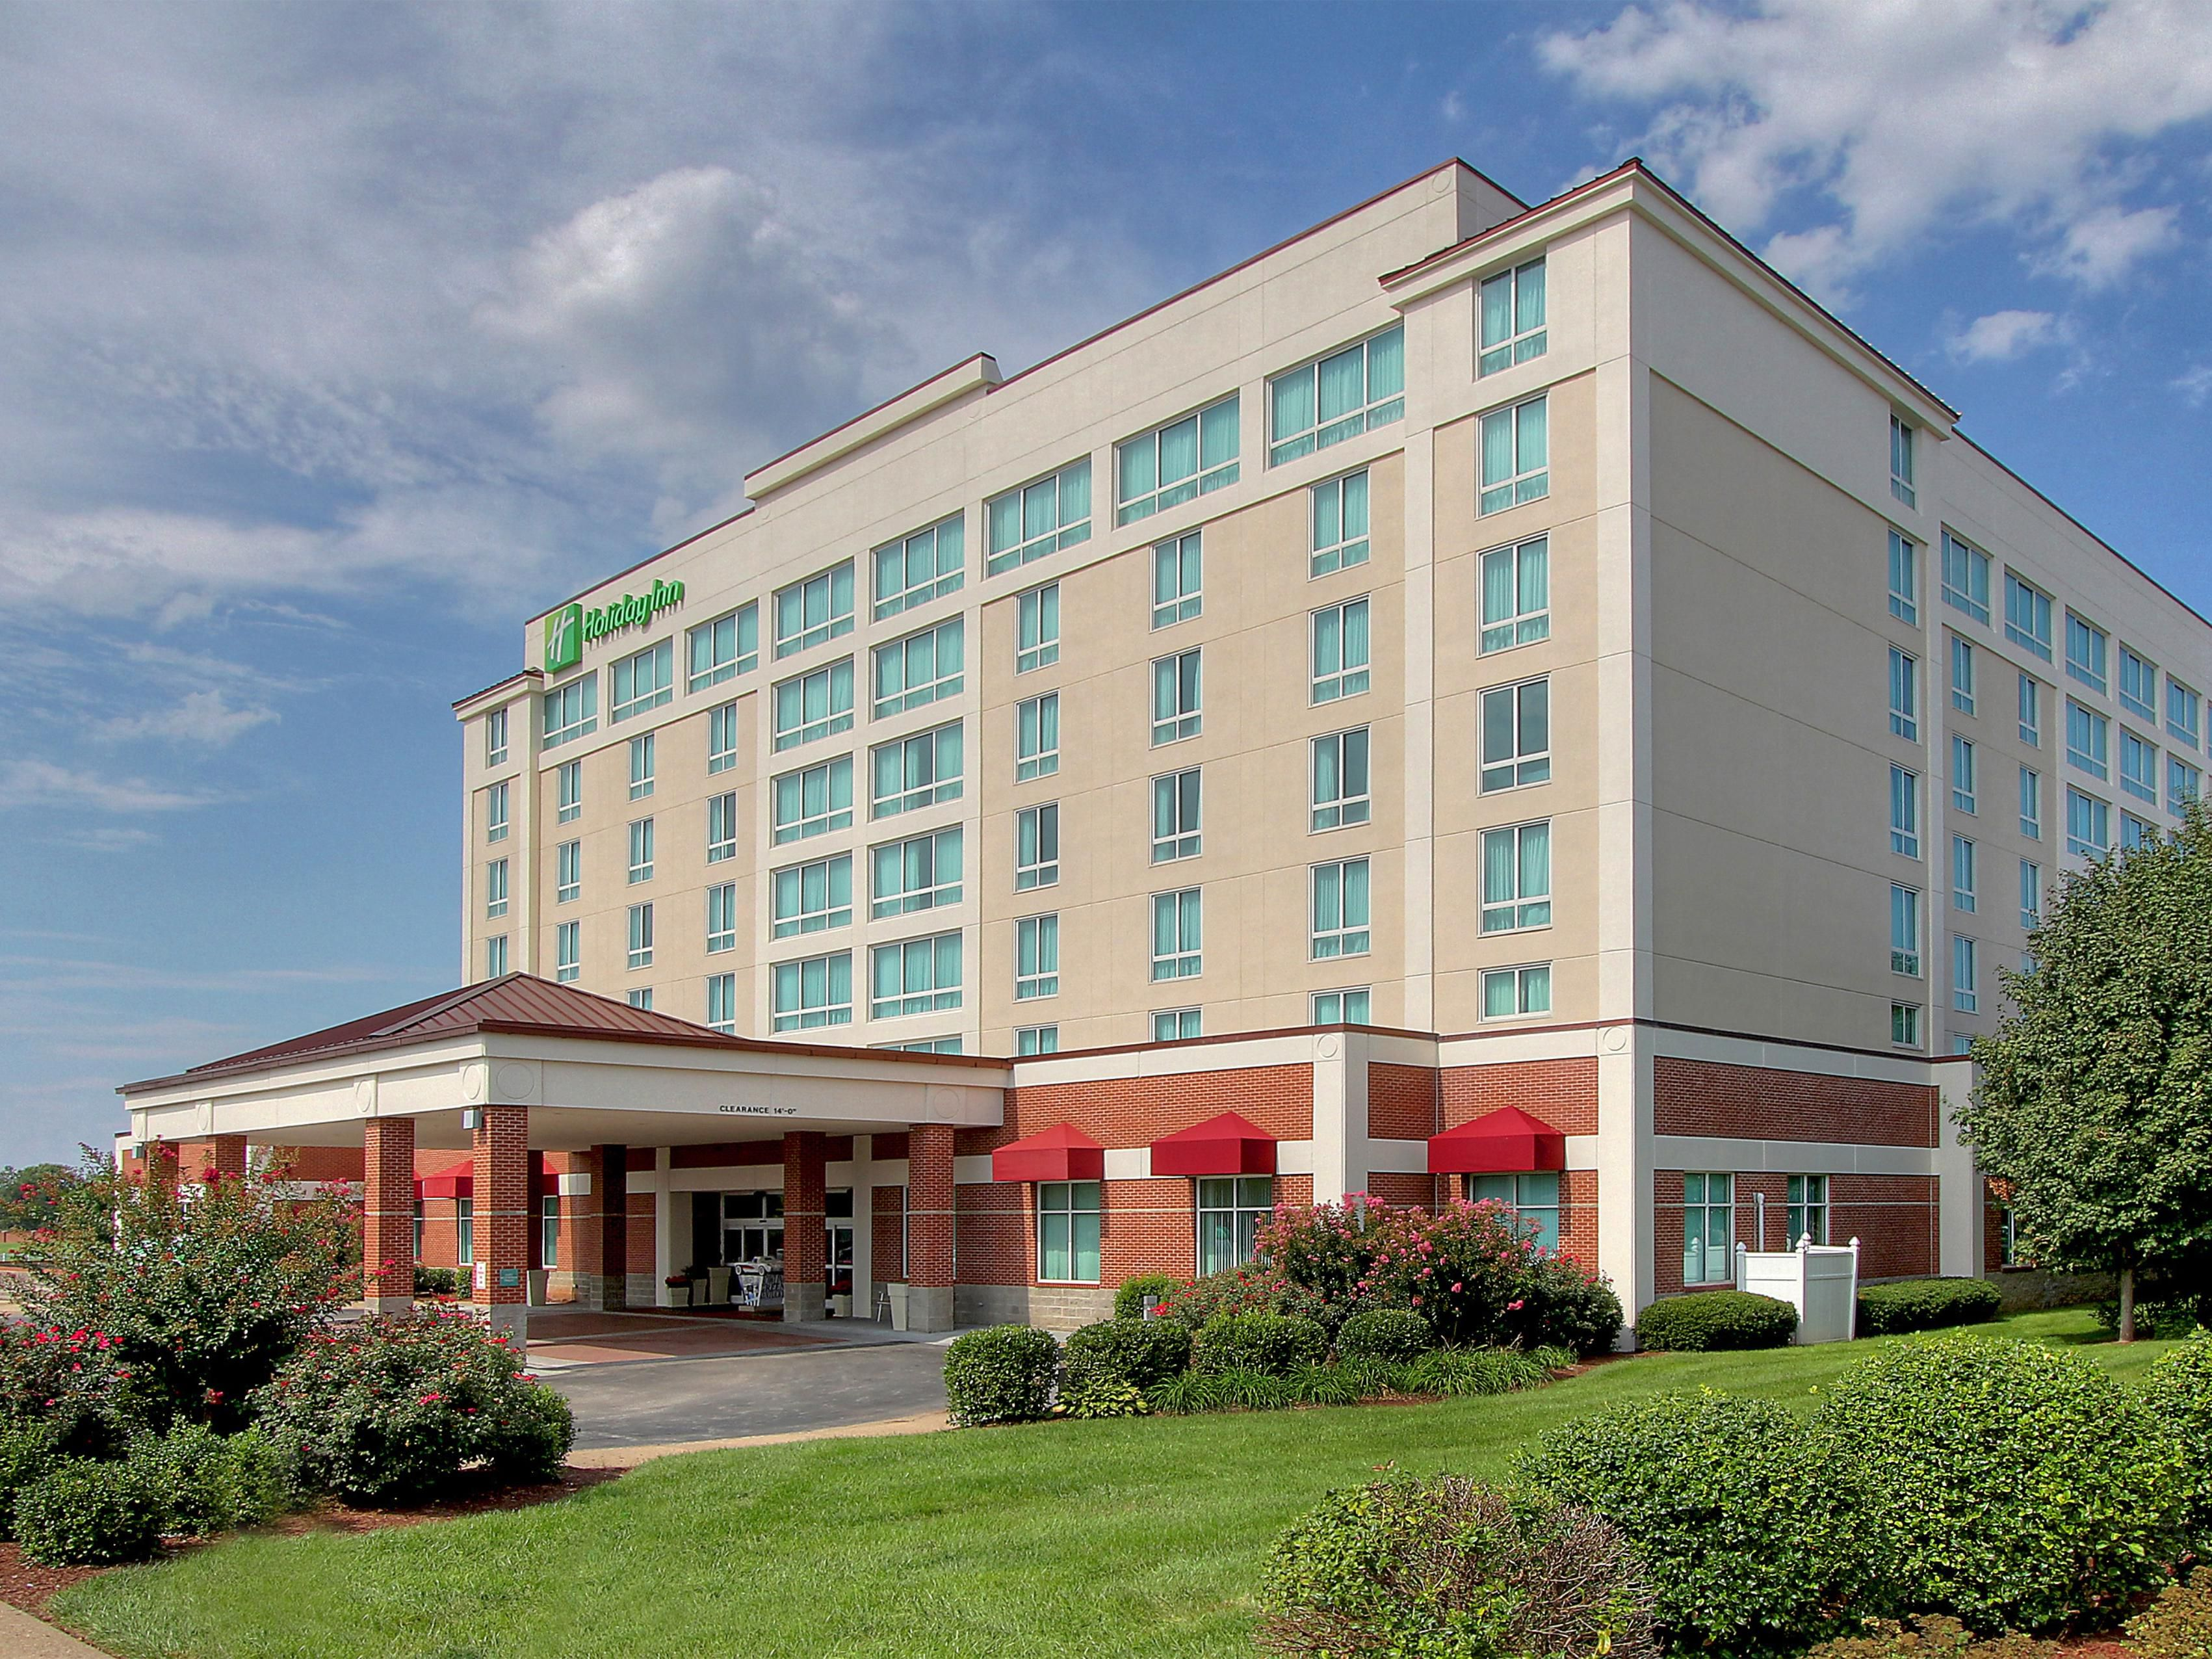 Hotels By Bowling Green State University Ohio